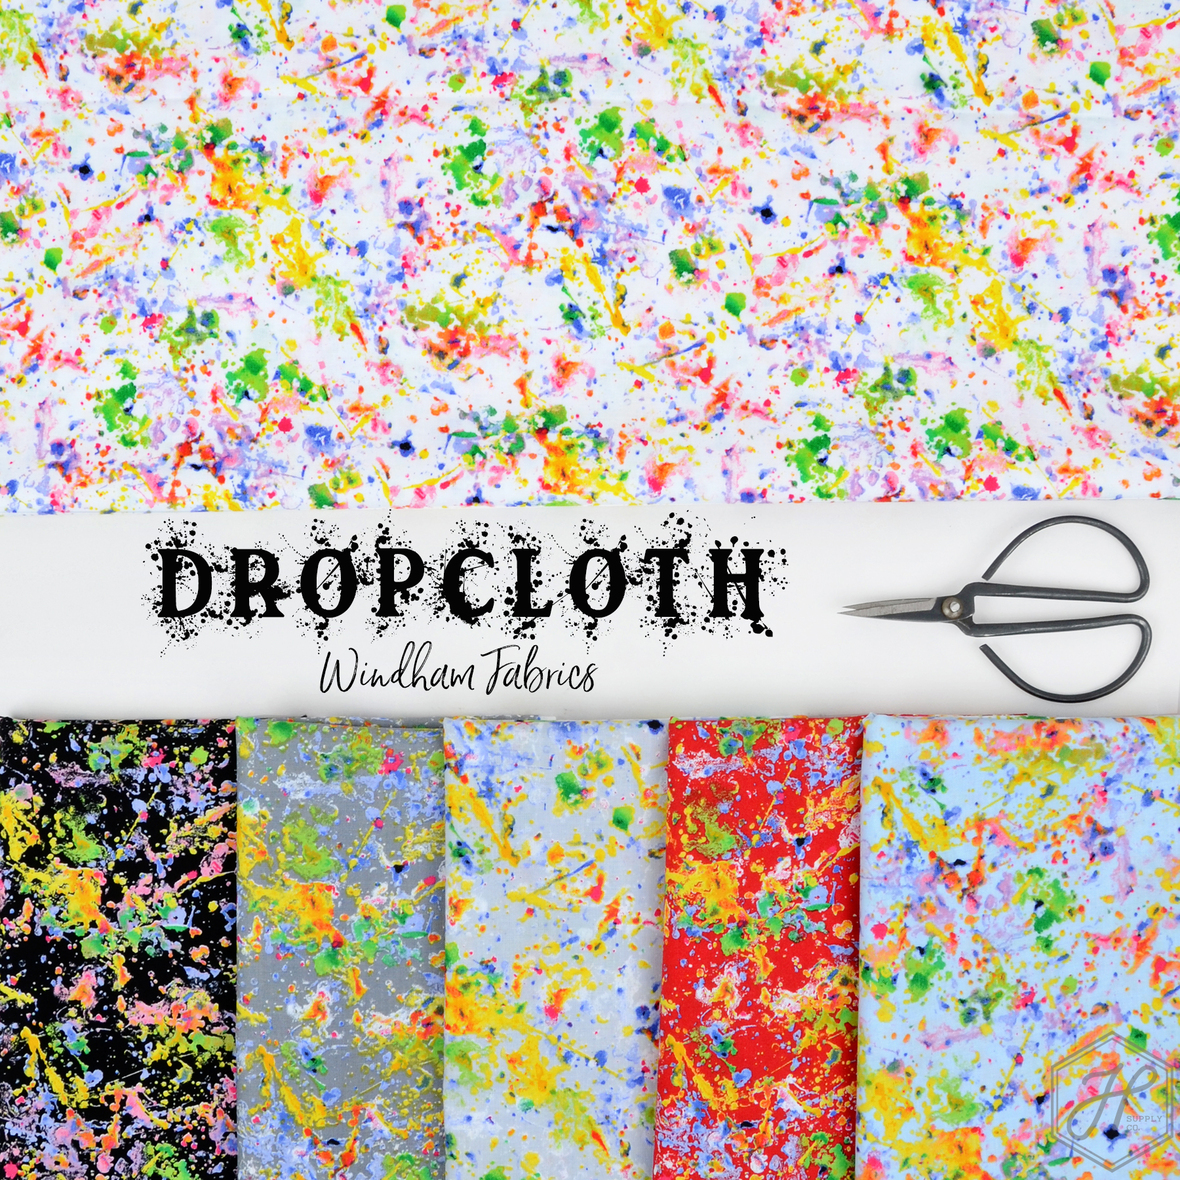 Dropcloth Windham Fabric at Hawthorne Supply Co